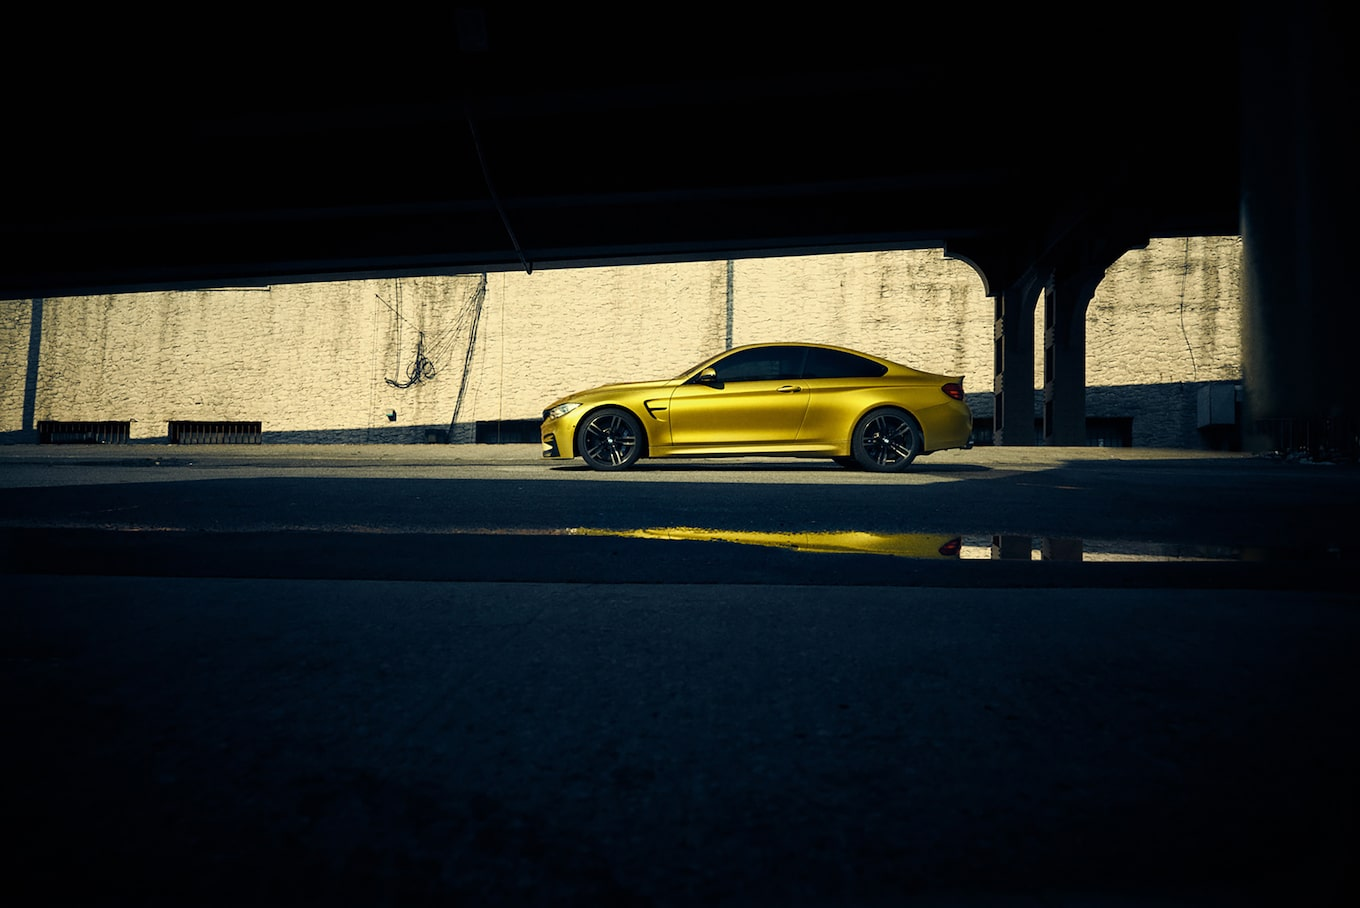 frederic-schlosser-sony-alpha-7R-yellow-car-under-bridge-with-relection-in-puddle